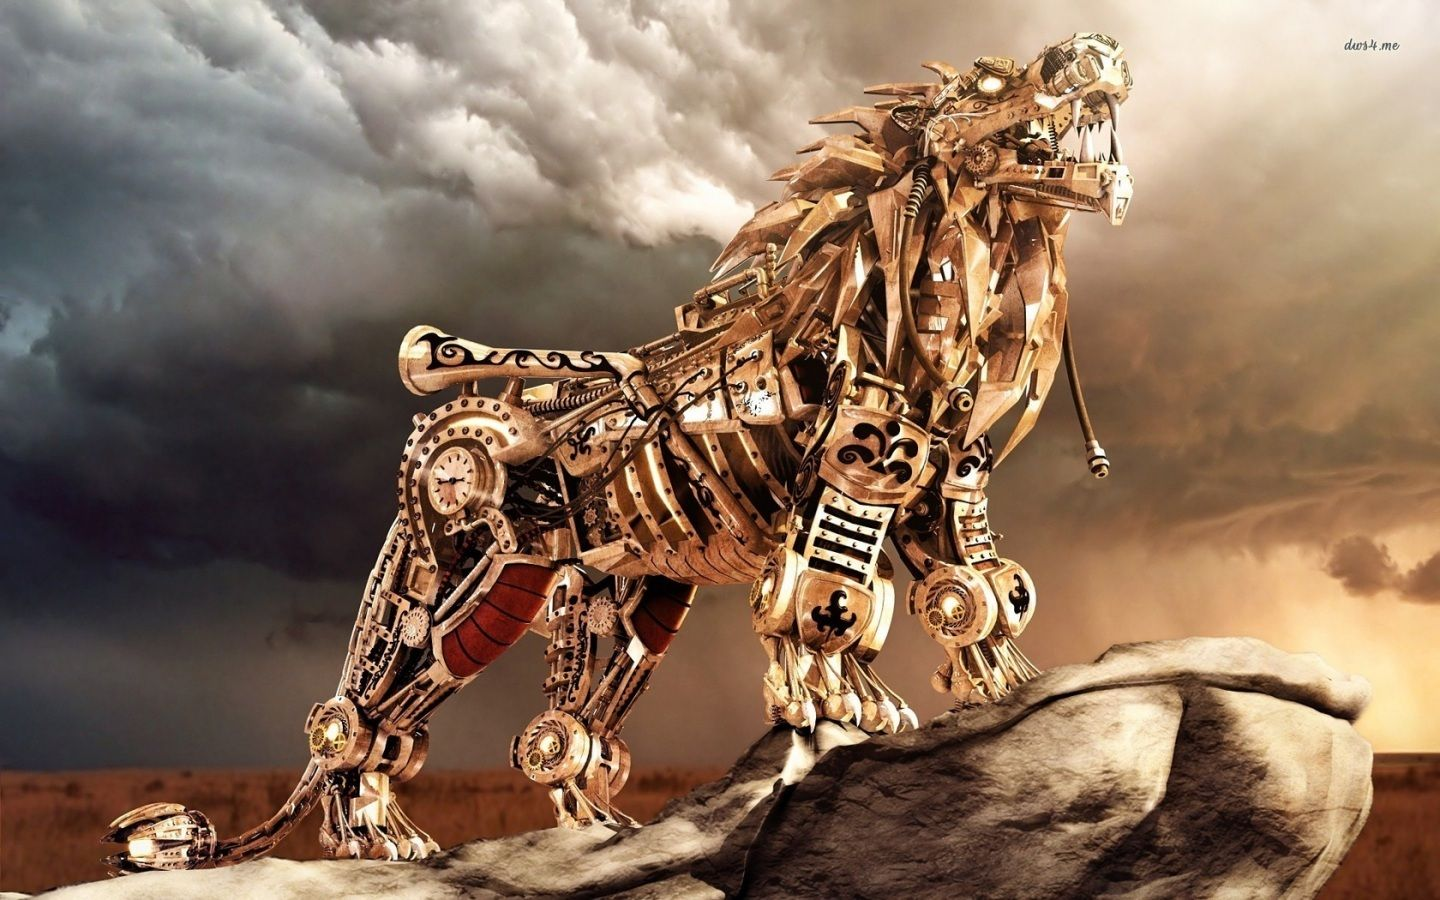 Images about lions tigers bears oh my on pinterest 1440900 tiger robot lion digital art hd desktop wallpaper robot wallpaper lion wallpaper digital art no altavistaventures Image collections